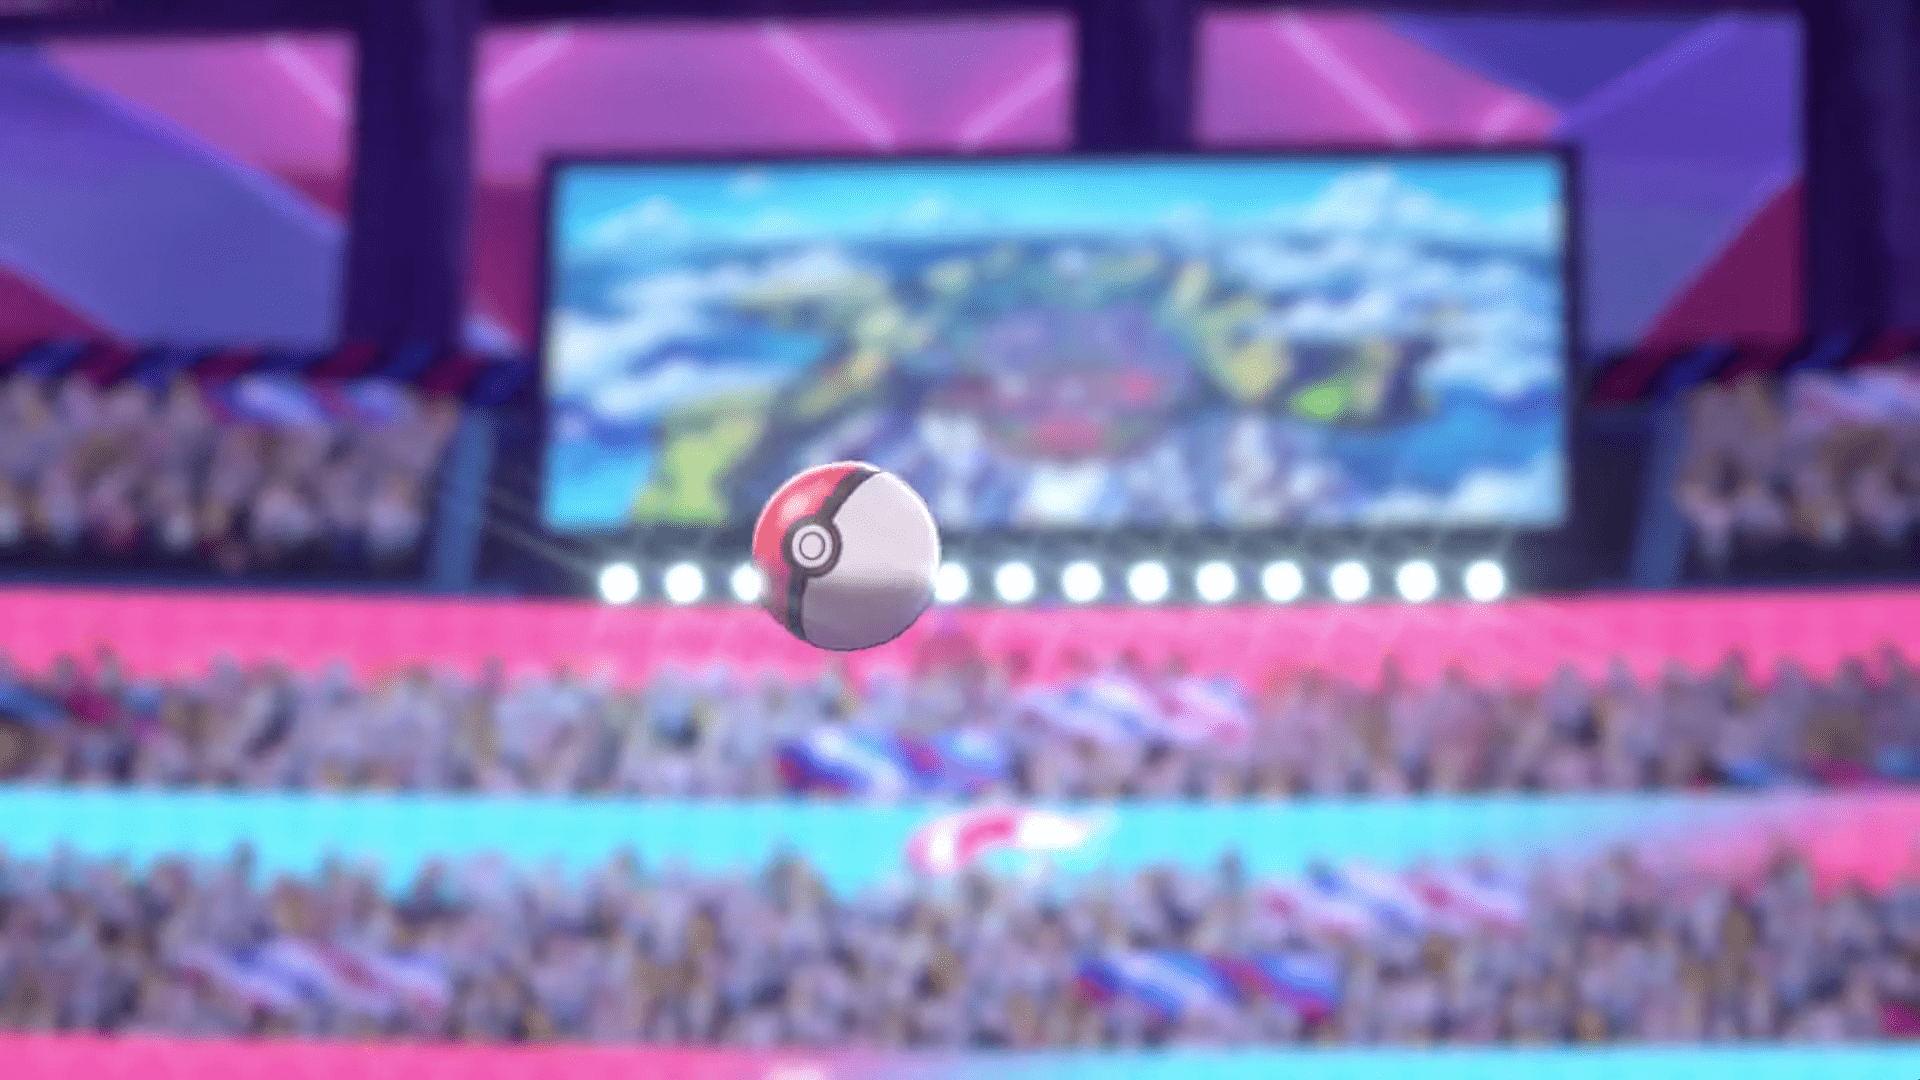 Pokemon Sword And Pokemon Shield Reveals Unseen Gameplay Elements And Gym Leaders